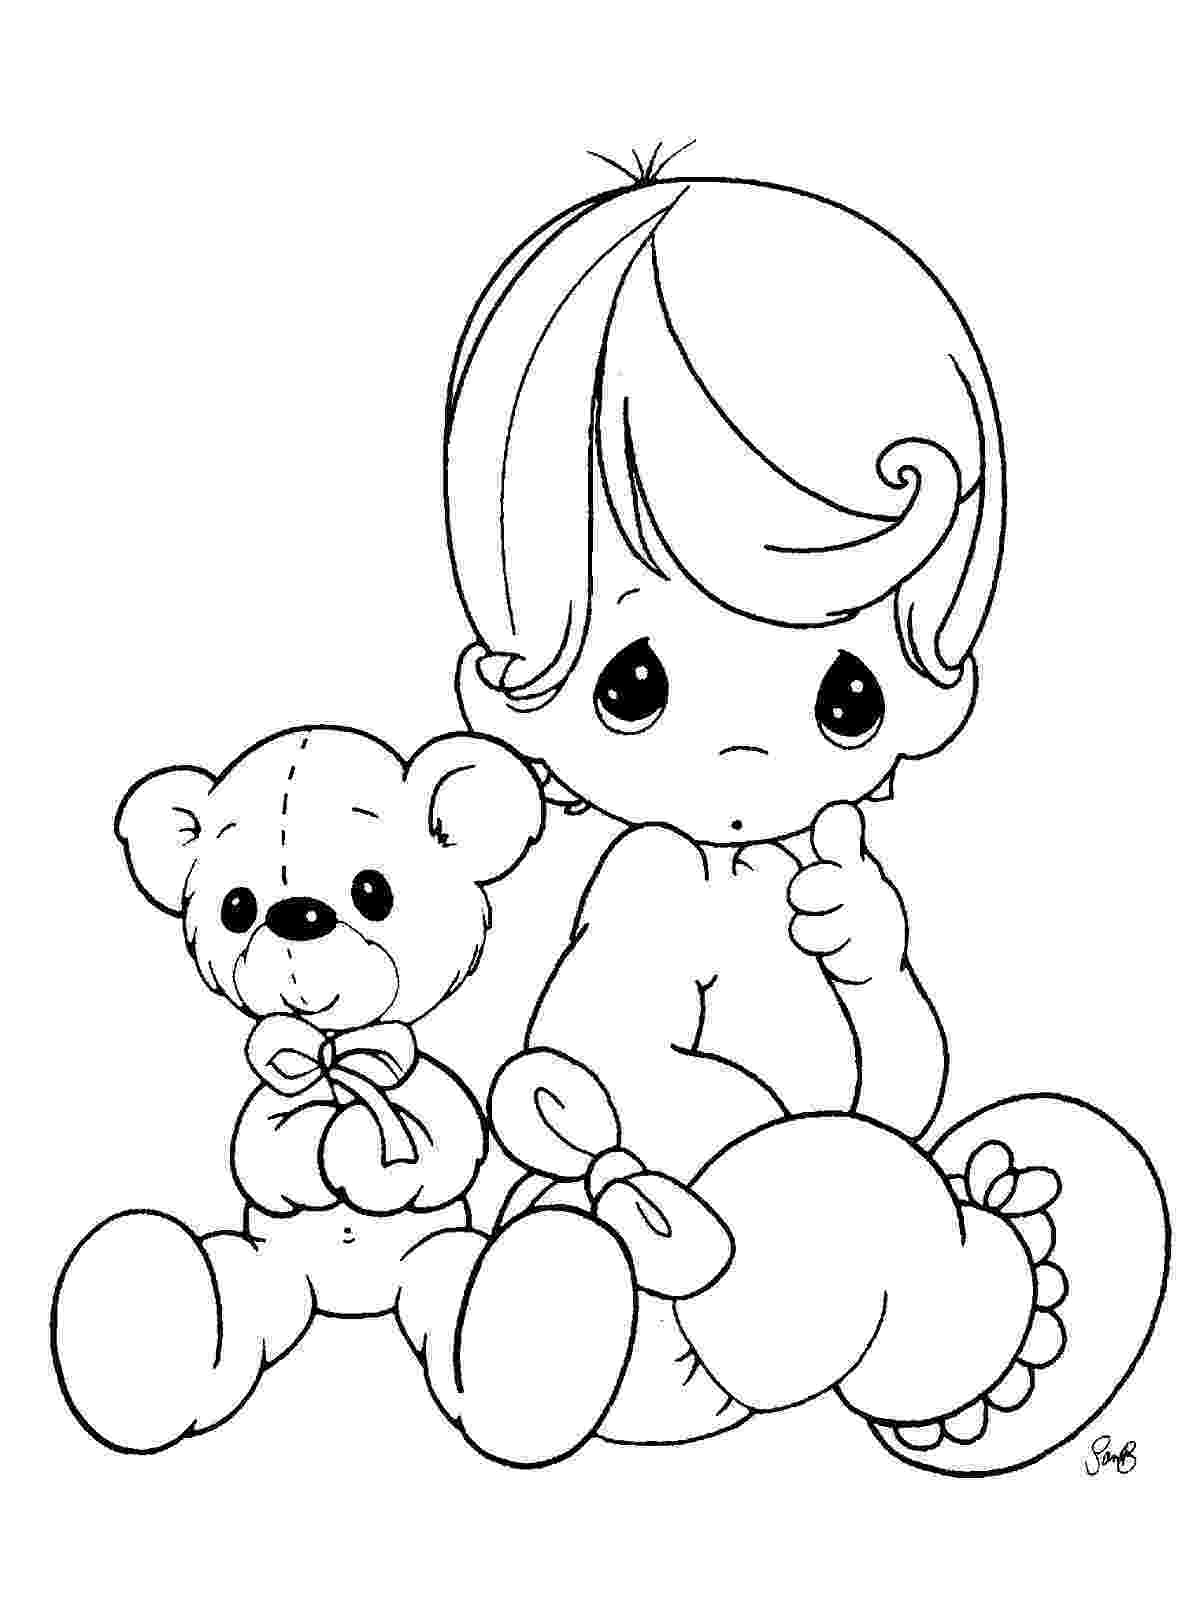 coloring pages of babies baby disney coloring pages to download and print for free coloring pages babies of